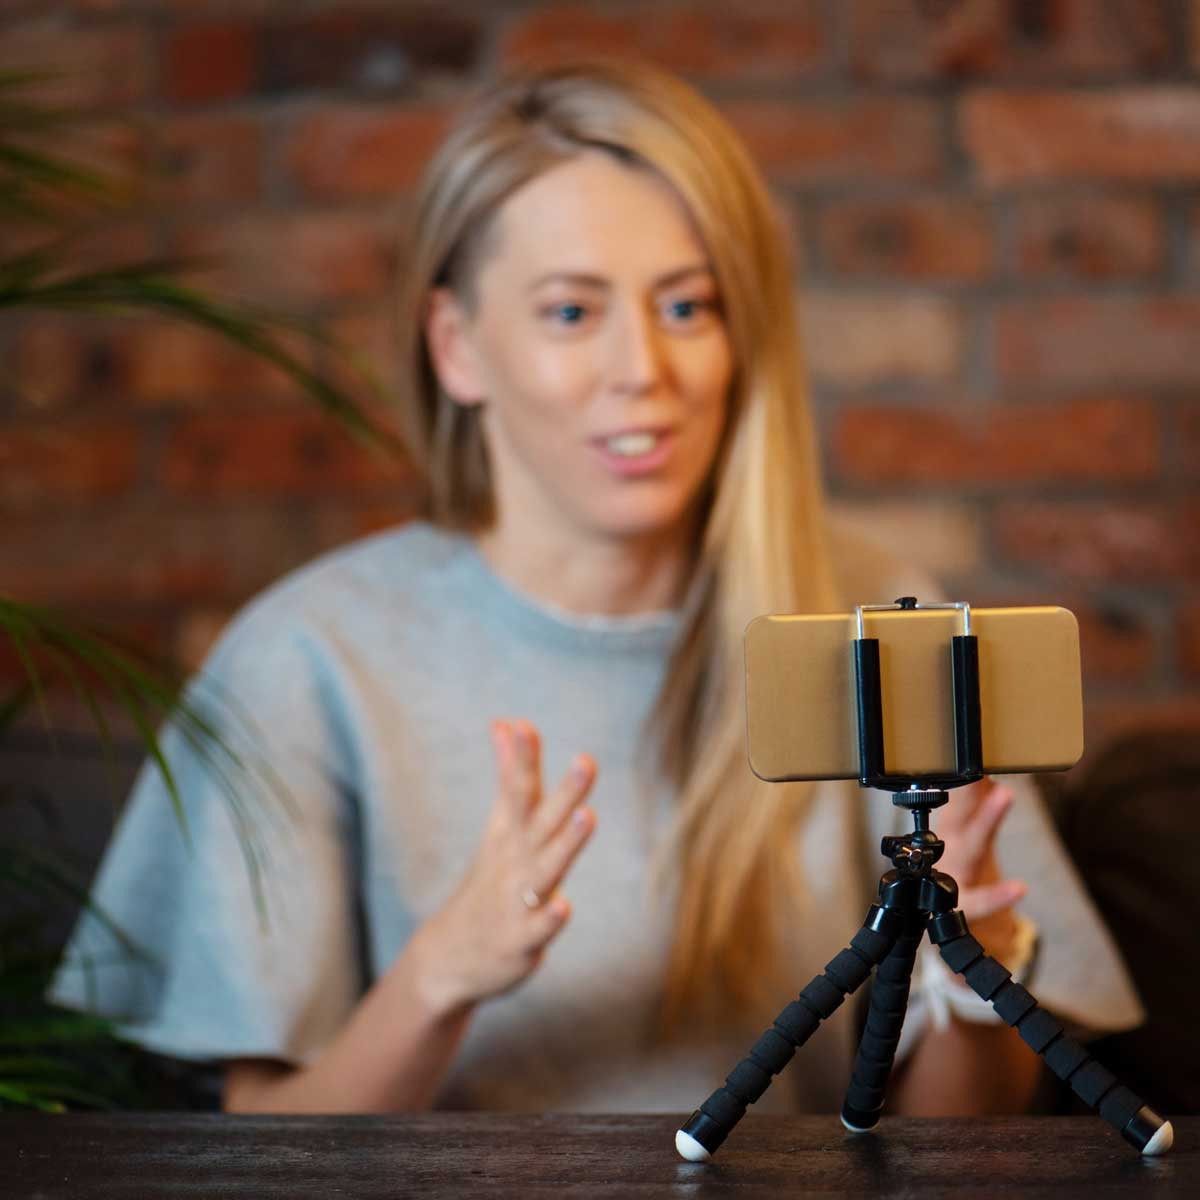 business leader recording video at home using mobile phone